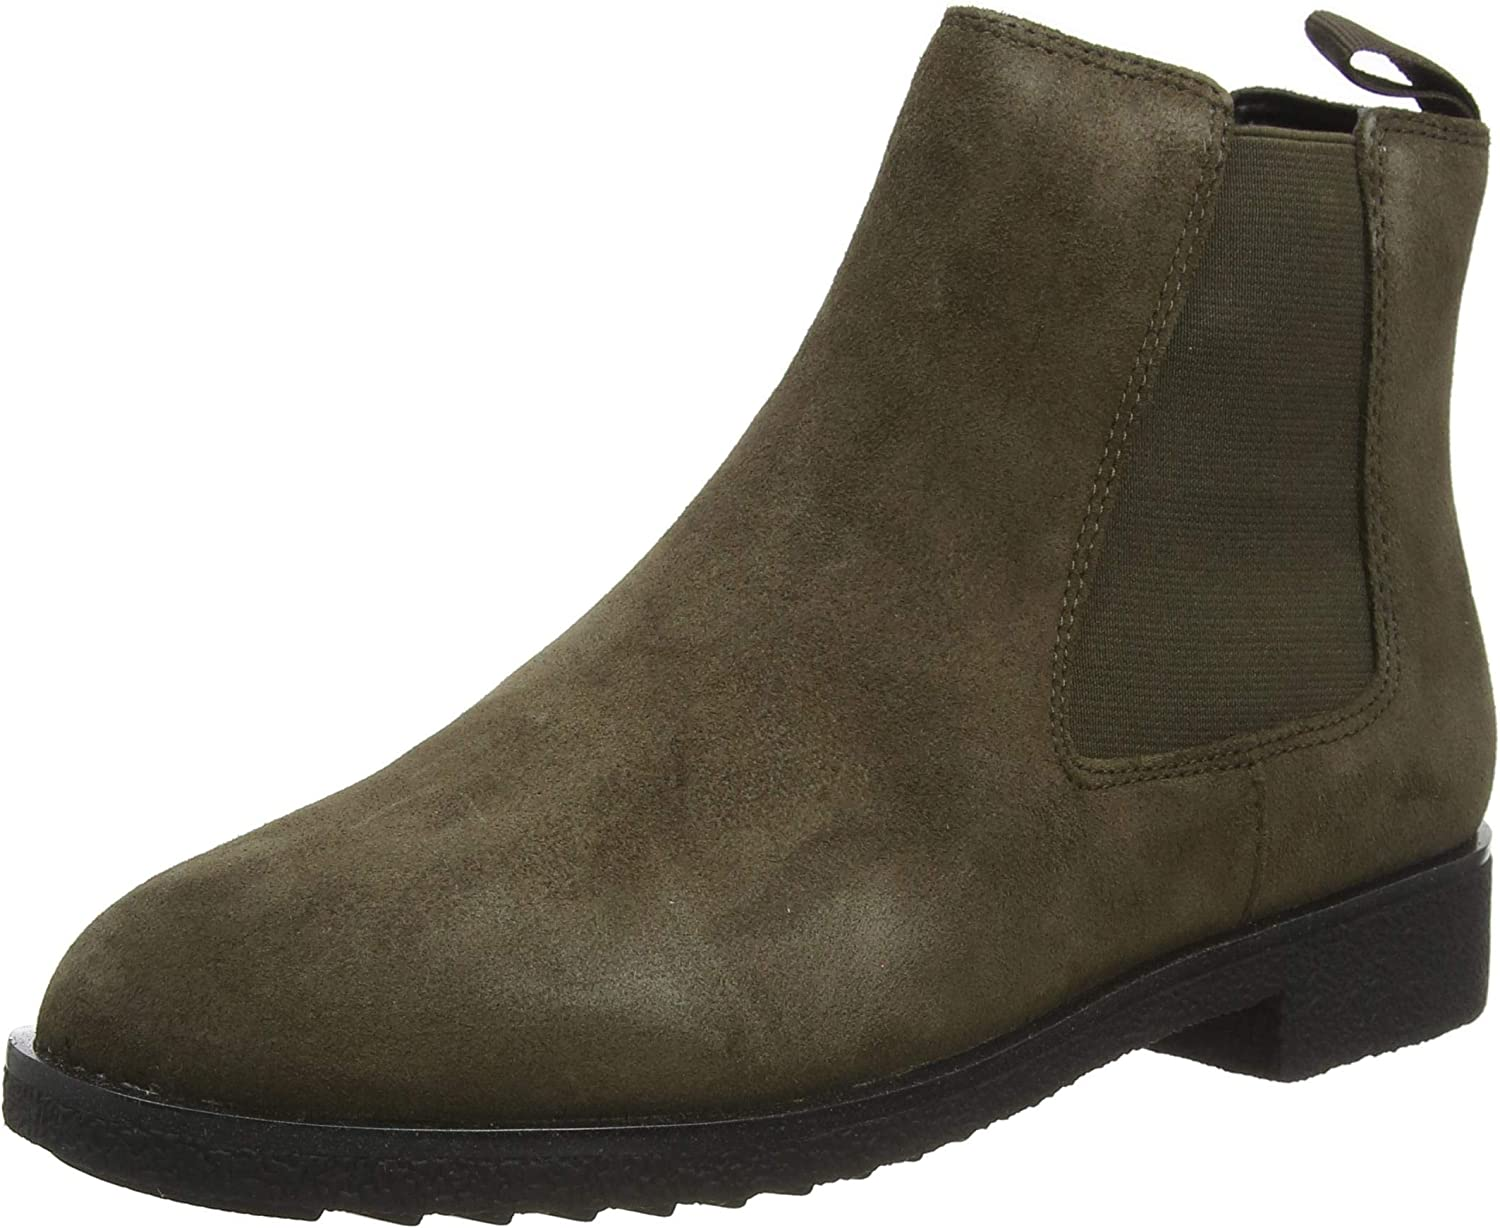 Clarks Women's Clarkdale Boots Special price for a limited time Popular overseas Chelsea Arlo